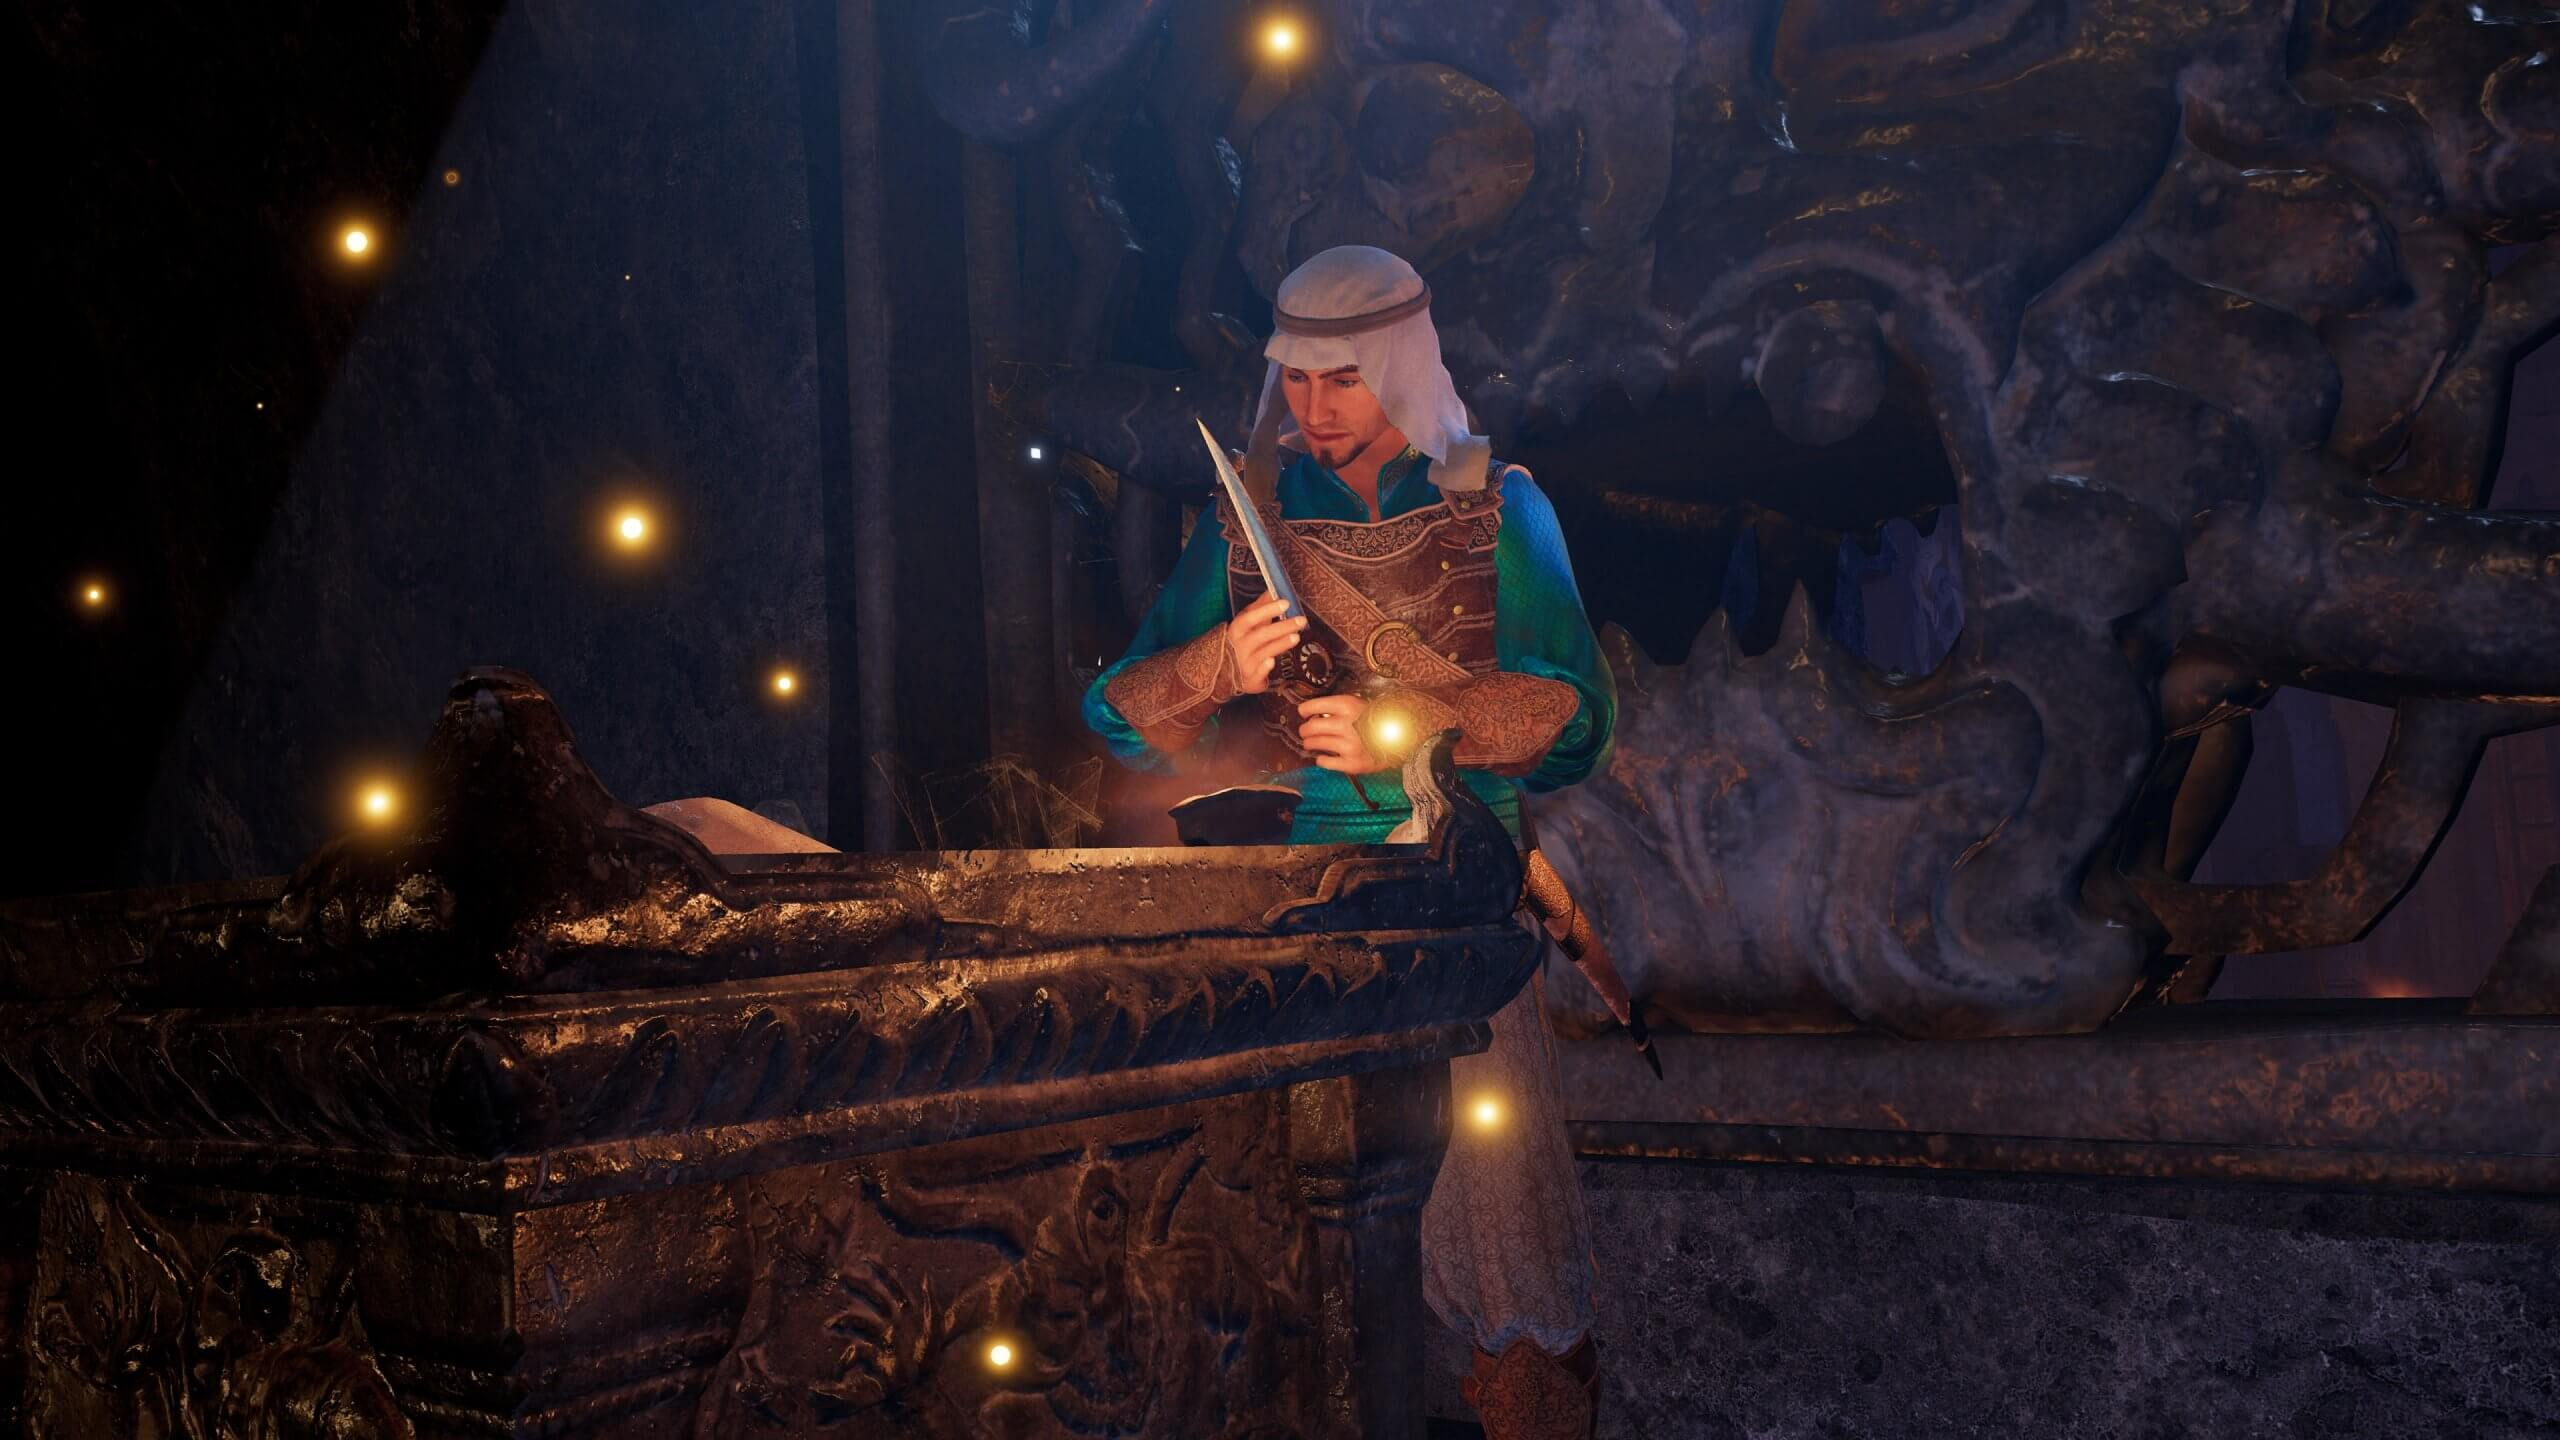 Ubisoft India comments on Prince of Persia: Sands of Time Remake's graphics